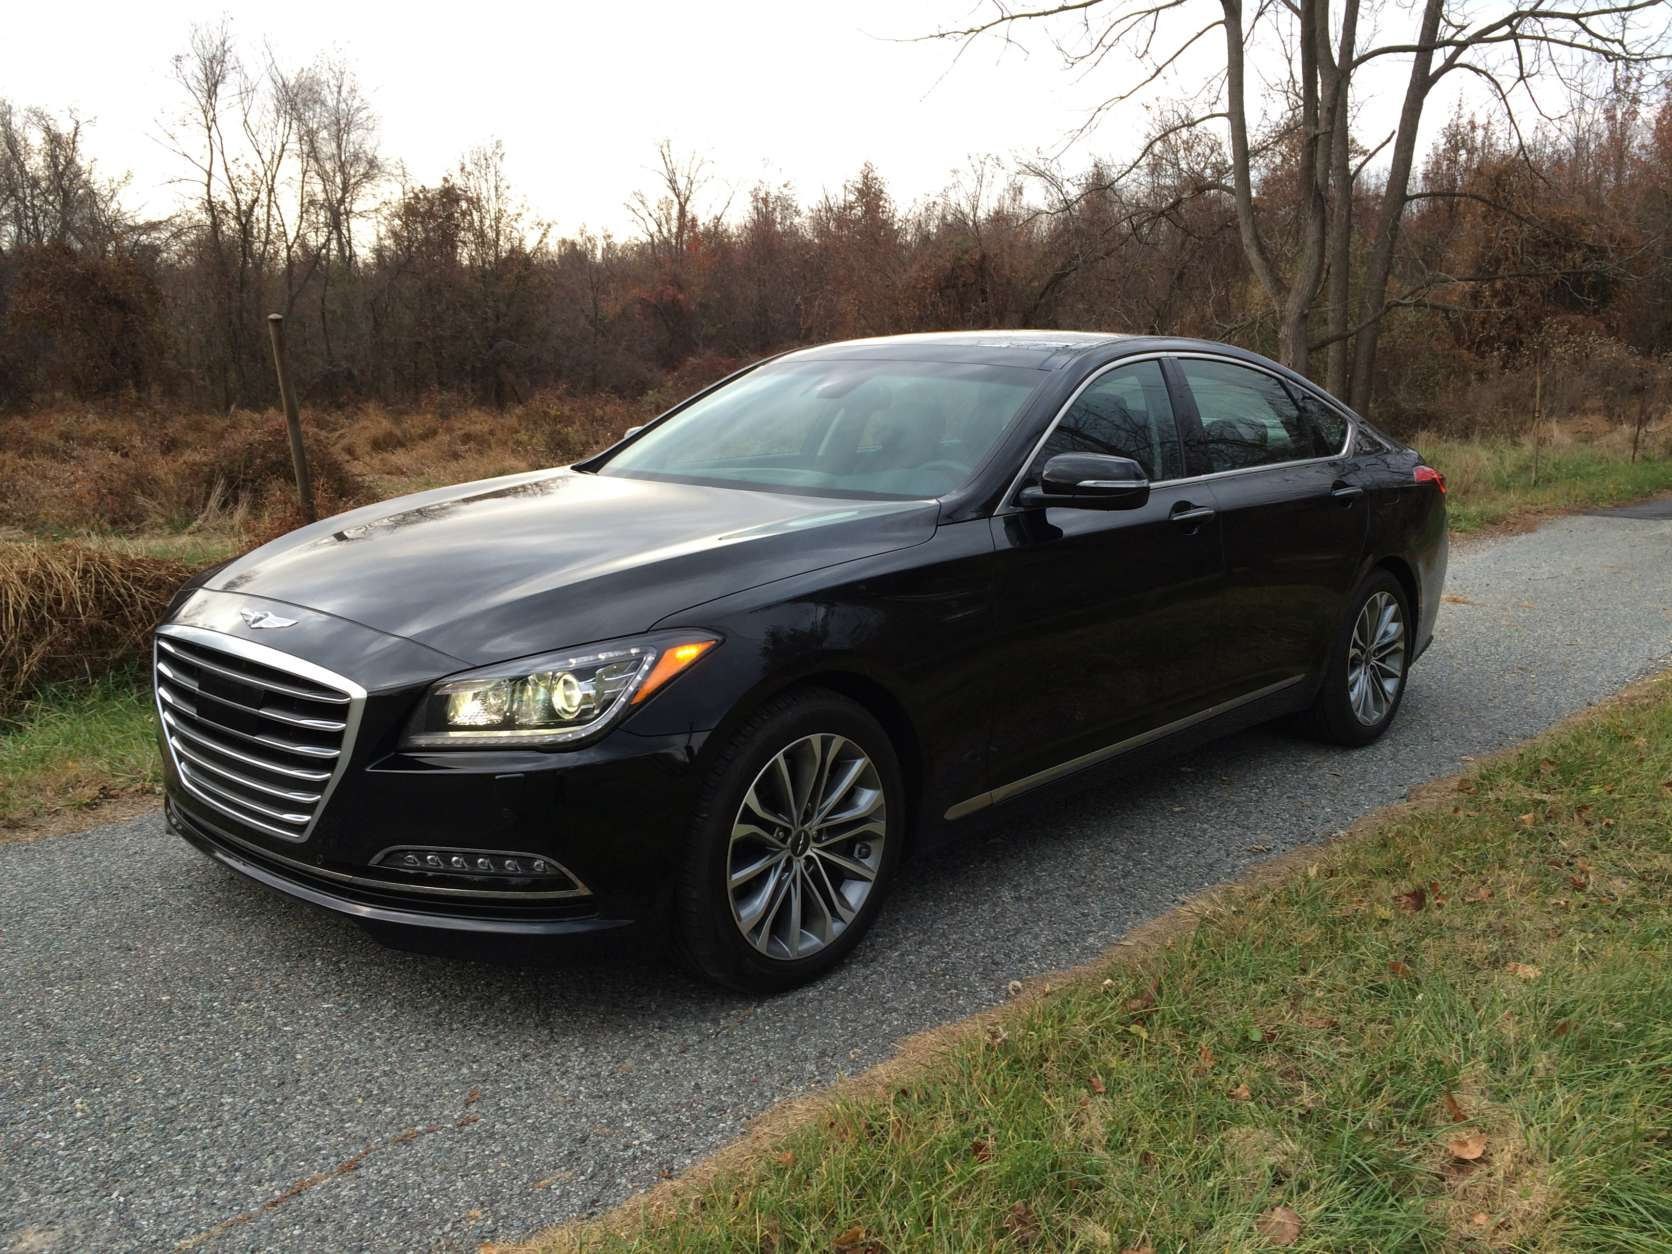 For 2017, Hyundai created the Genesis brand to better compete in the luxury market. (WTOP/Mike Parris)